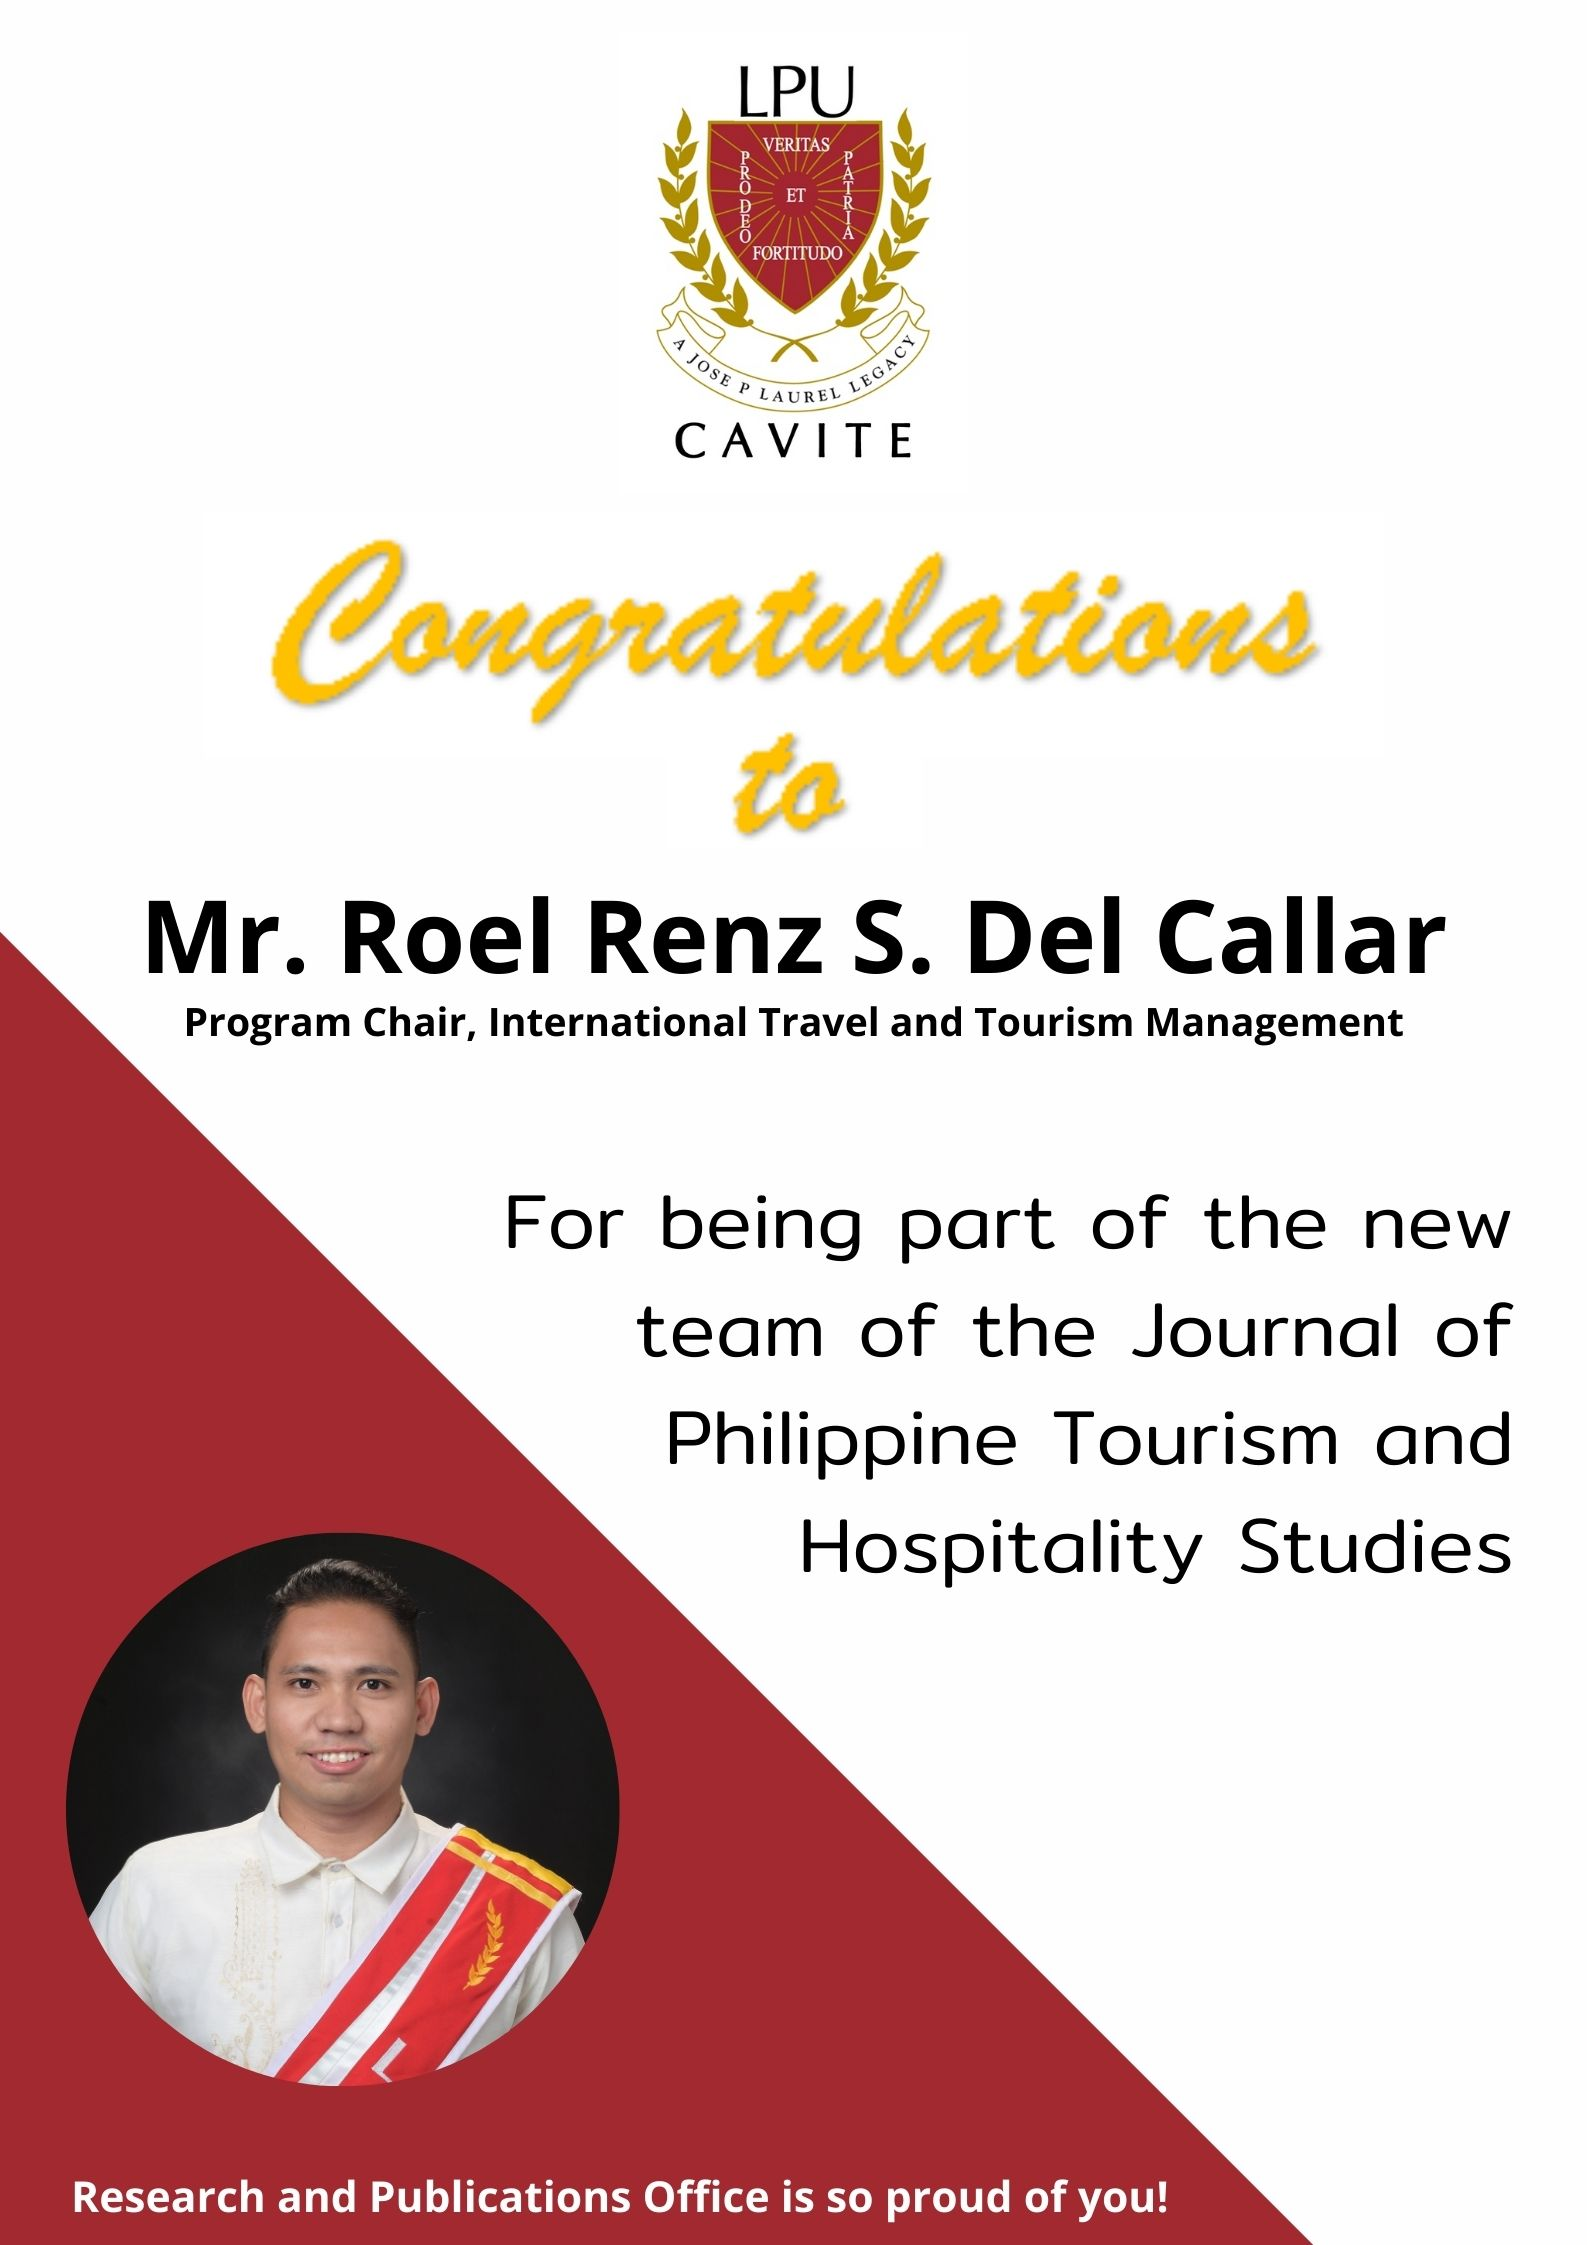 ITTM Program Chair Appointed as a New Member of the Journal of Philippine Tourism and Hospitality Studies (JPTHS)